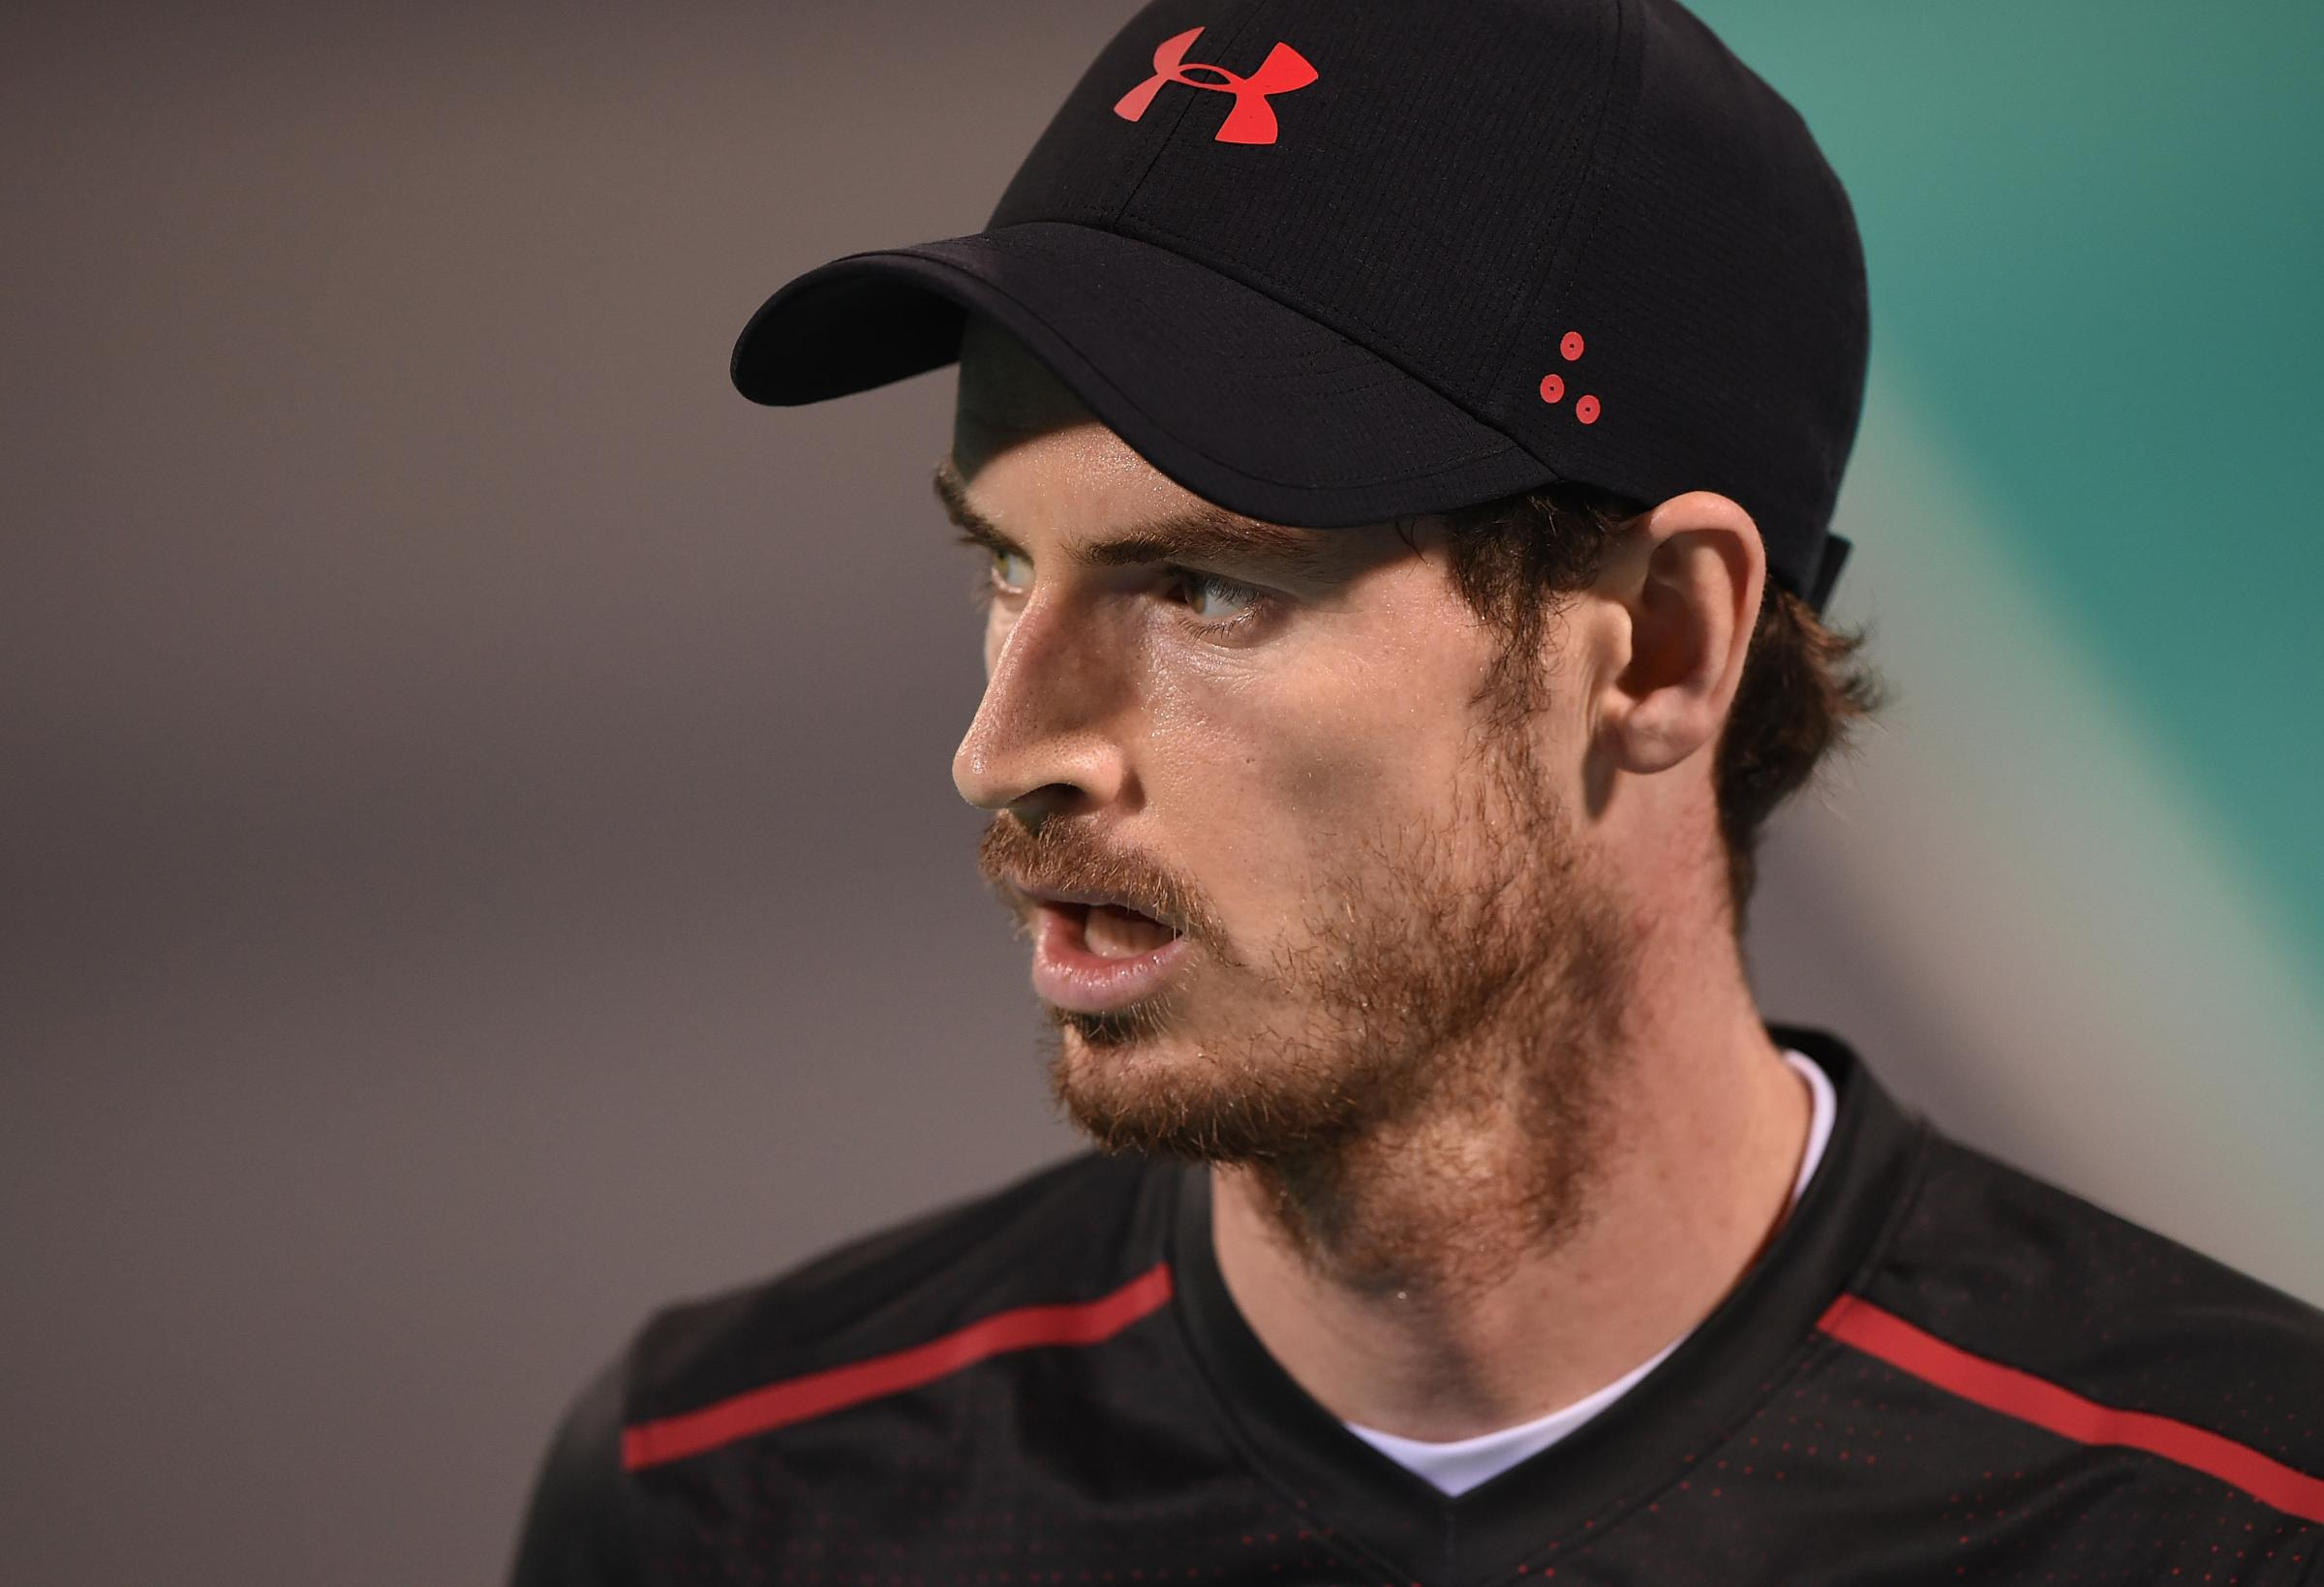 Andy Murray has pulled out of the Australian Open as he continues to suffer from the hip issue that is stalling his career